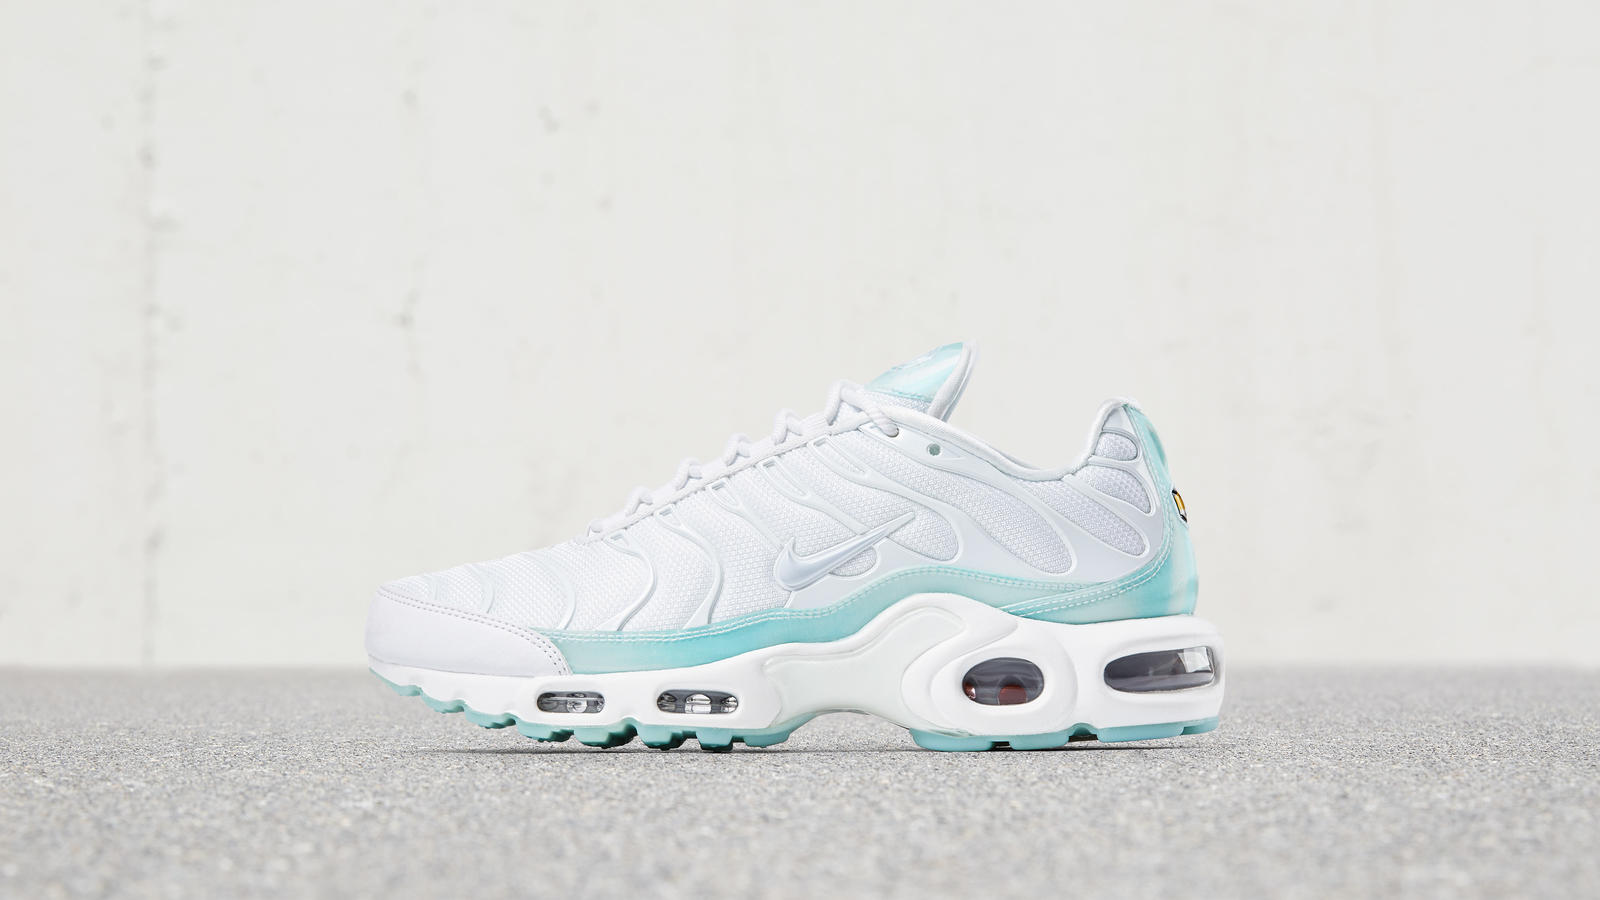 Air max plus holographic white 1 hd 1600